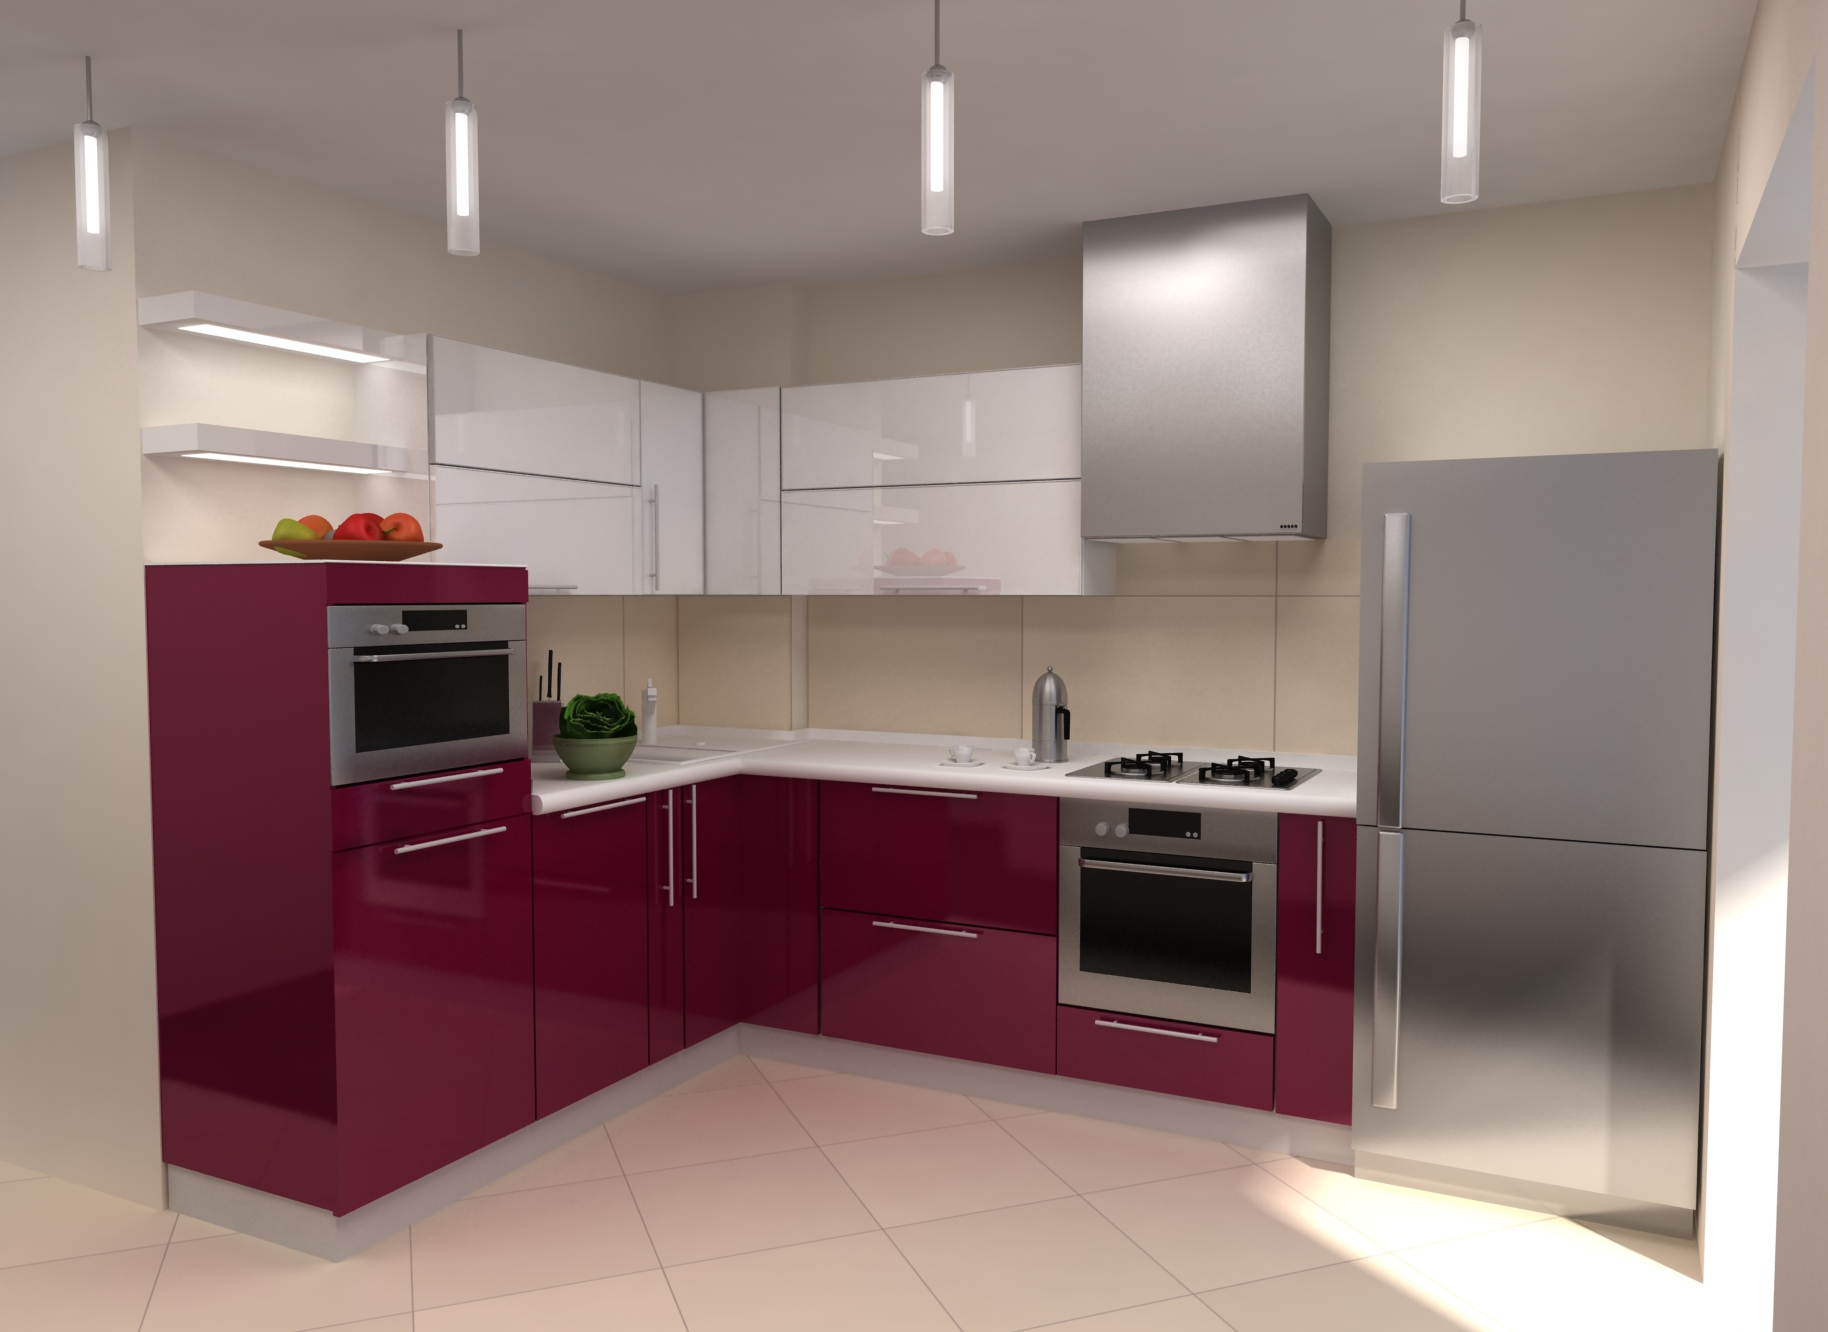 Maroon_trim_kitchen_091494_